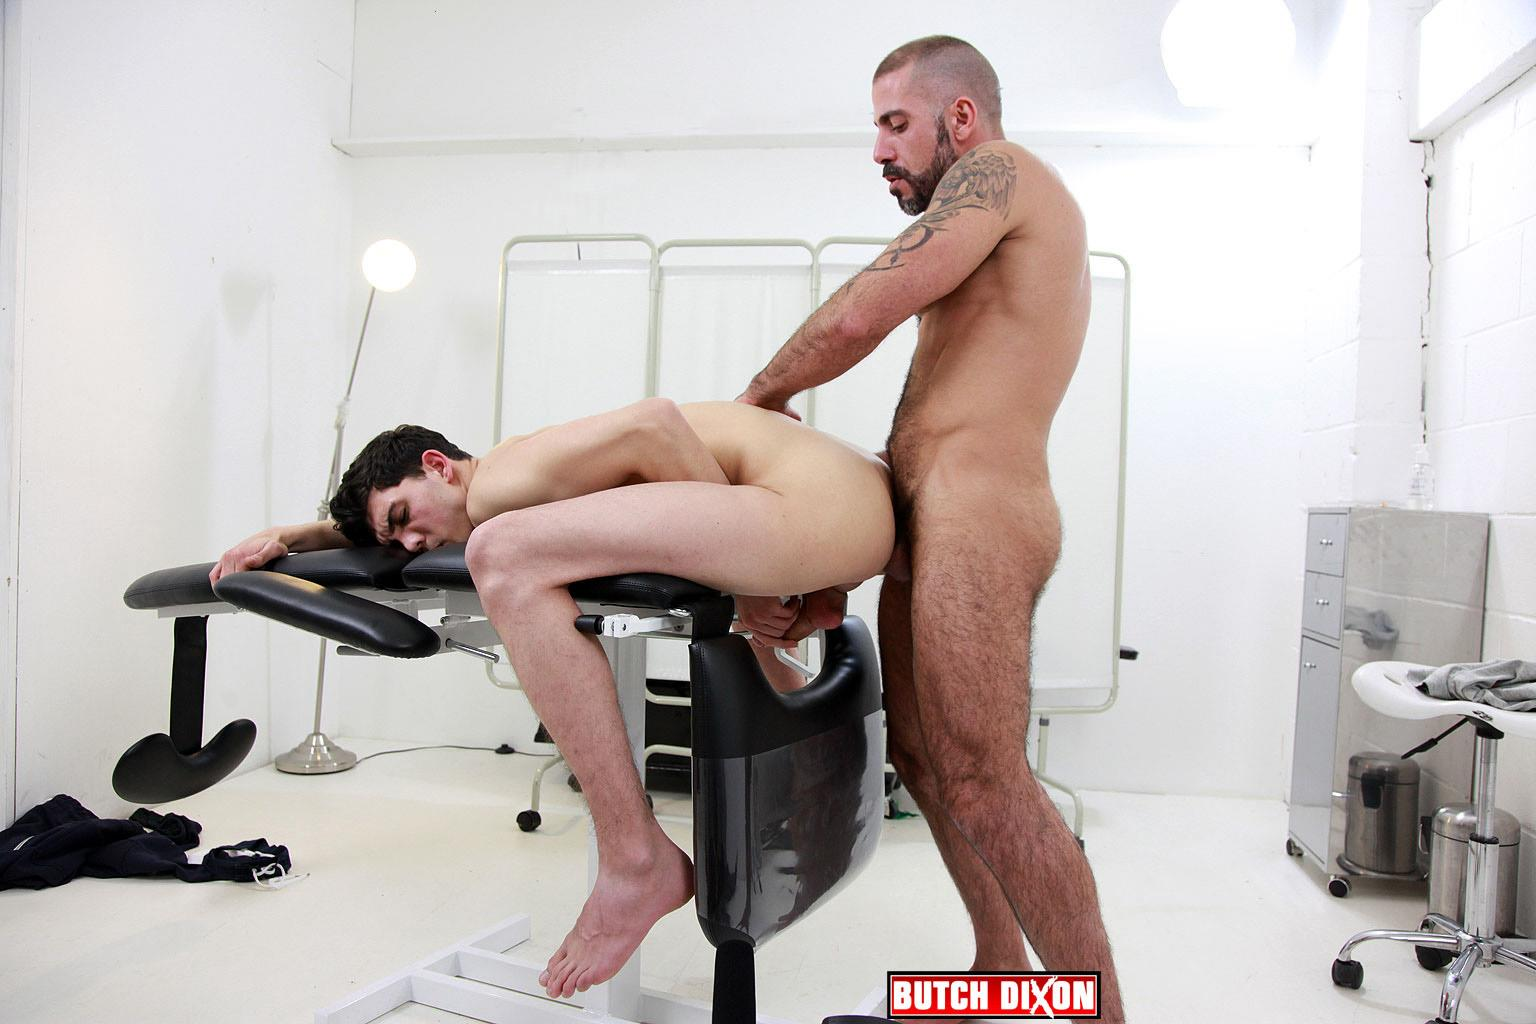 Butch Dixon Michel Rudin and Luke Tyler Big Uncut Cock Fucking Amateur Gay Porn 21 Hairy Muscle Hunk With A Big Uncut Cock Fucking A Smooth Younger Guy